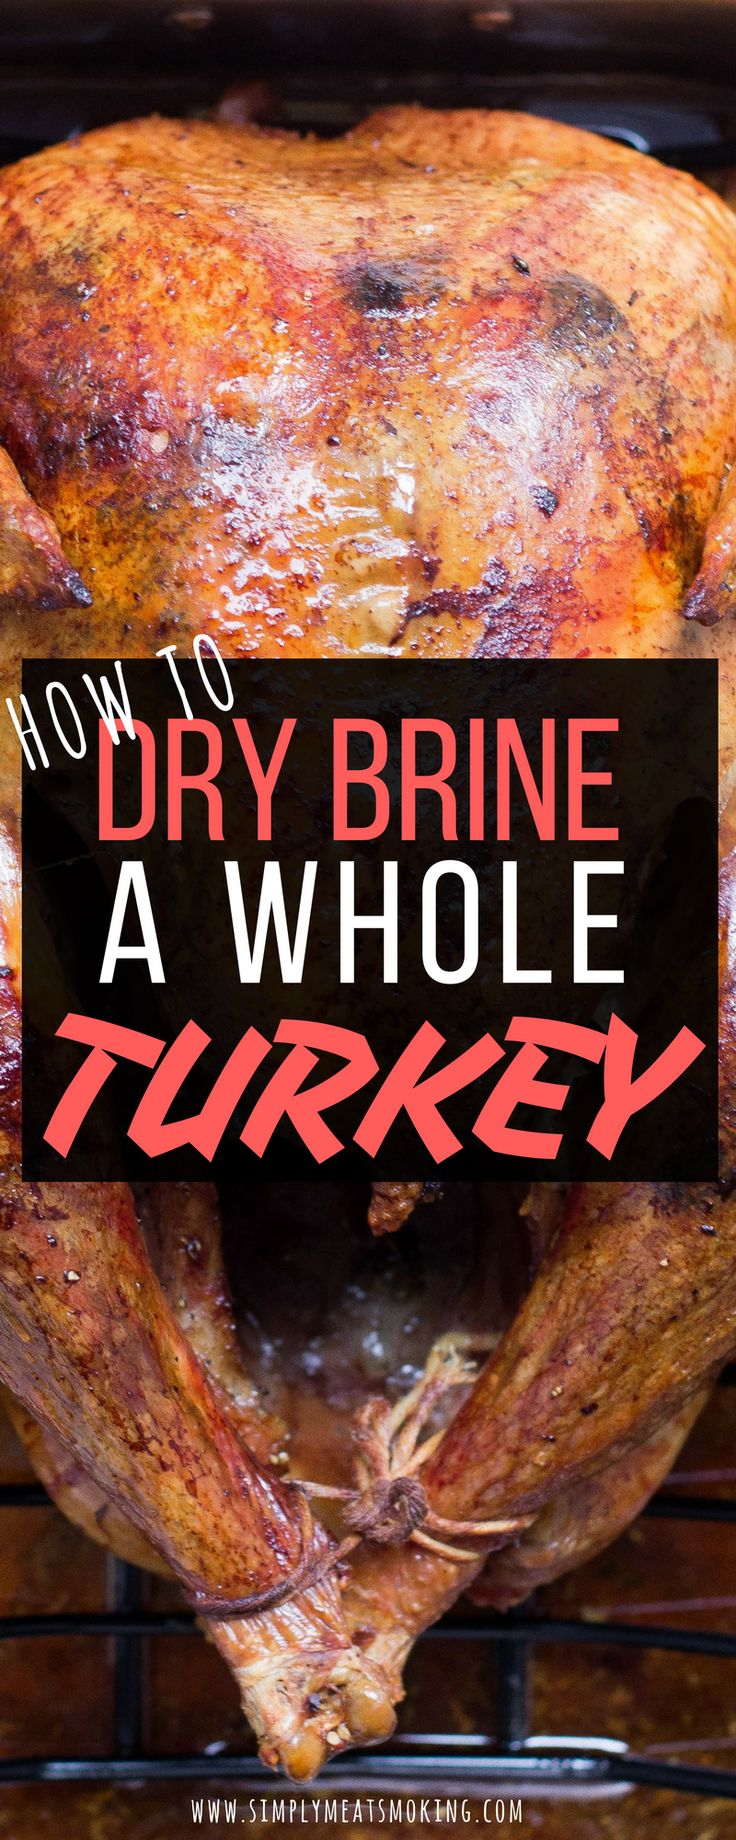 Brining a turkey is not hard! Follow these simple steps! | Turkey Recipe | BBQ Recipes | Gas Barbecue Recipes | Gas Smoker Recipes | Gas Grill Recipes | Best Gas Grill Recipes | Best Gas Smoker Recipes | Best Gas BBQ Recipes | Best Gas Barbecue Recipes |